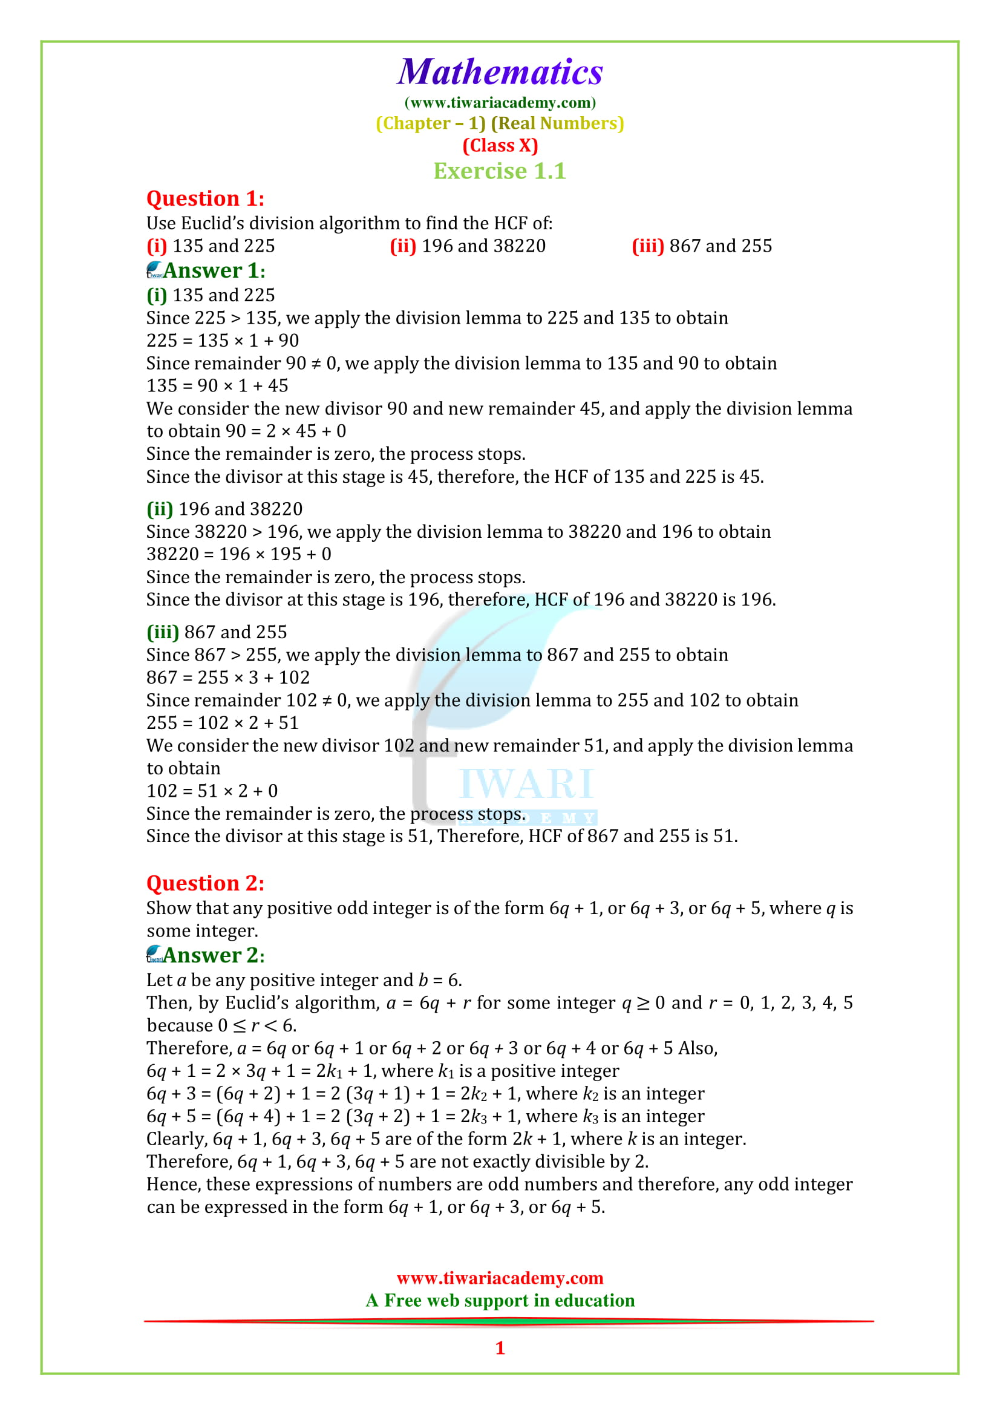 Ncert Solutions For Class 10 Maths Chapter 1 Exercise 1 1 For 2019 20 In 2020 Math Math Formulas Division Algorithm